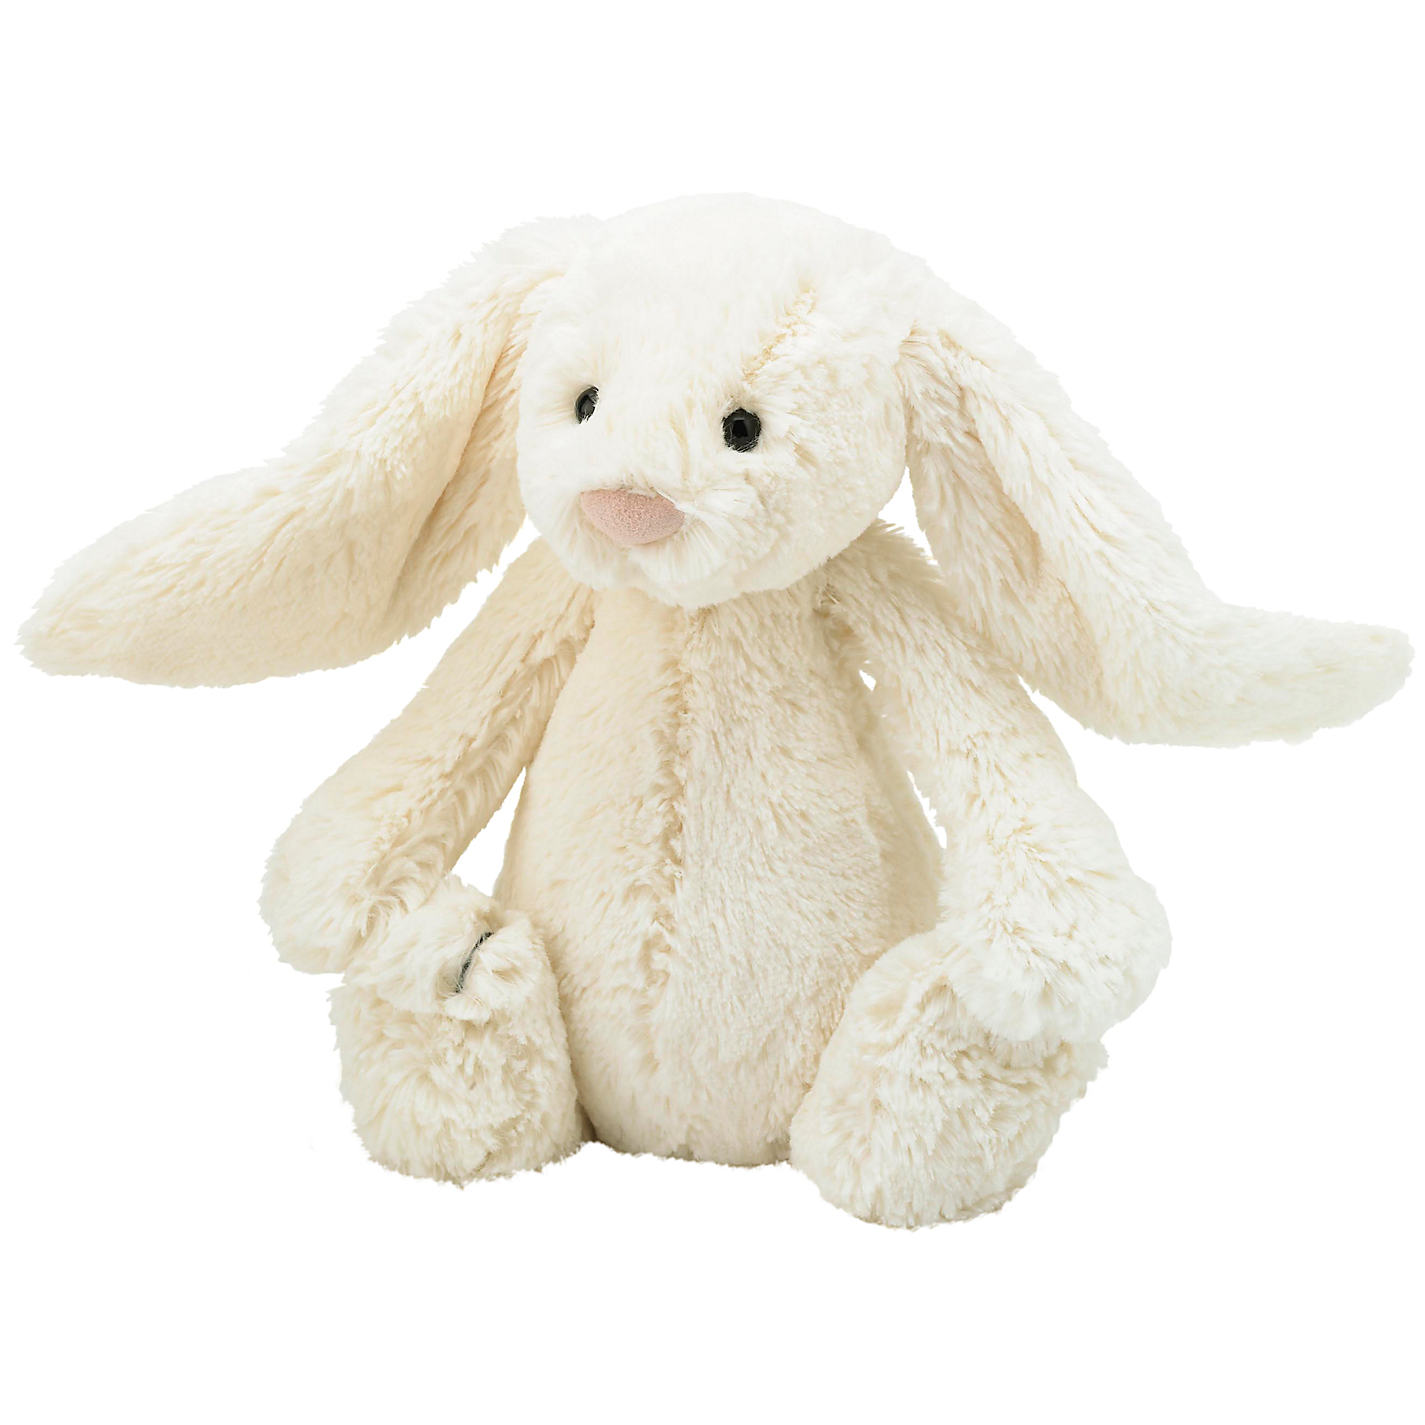 Jellycat Bashful Bunny Soft Toy, Medium, Cream